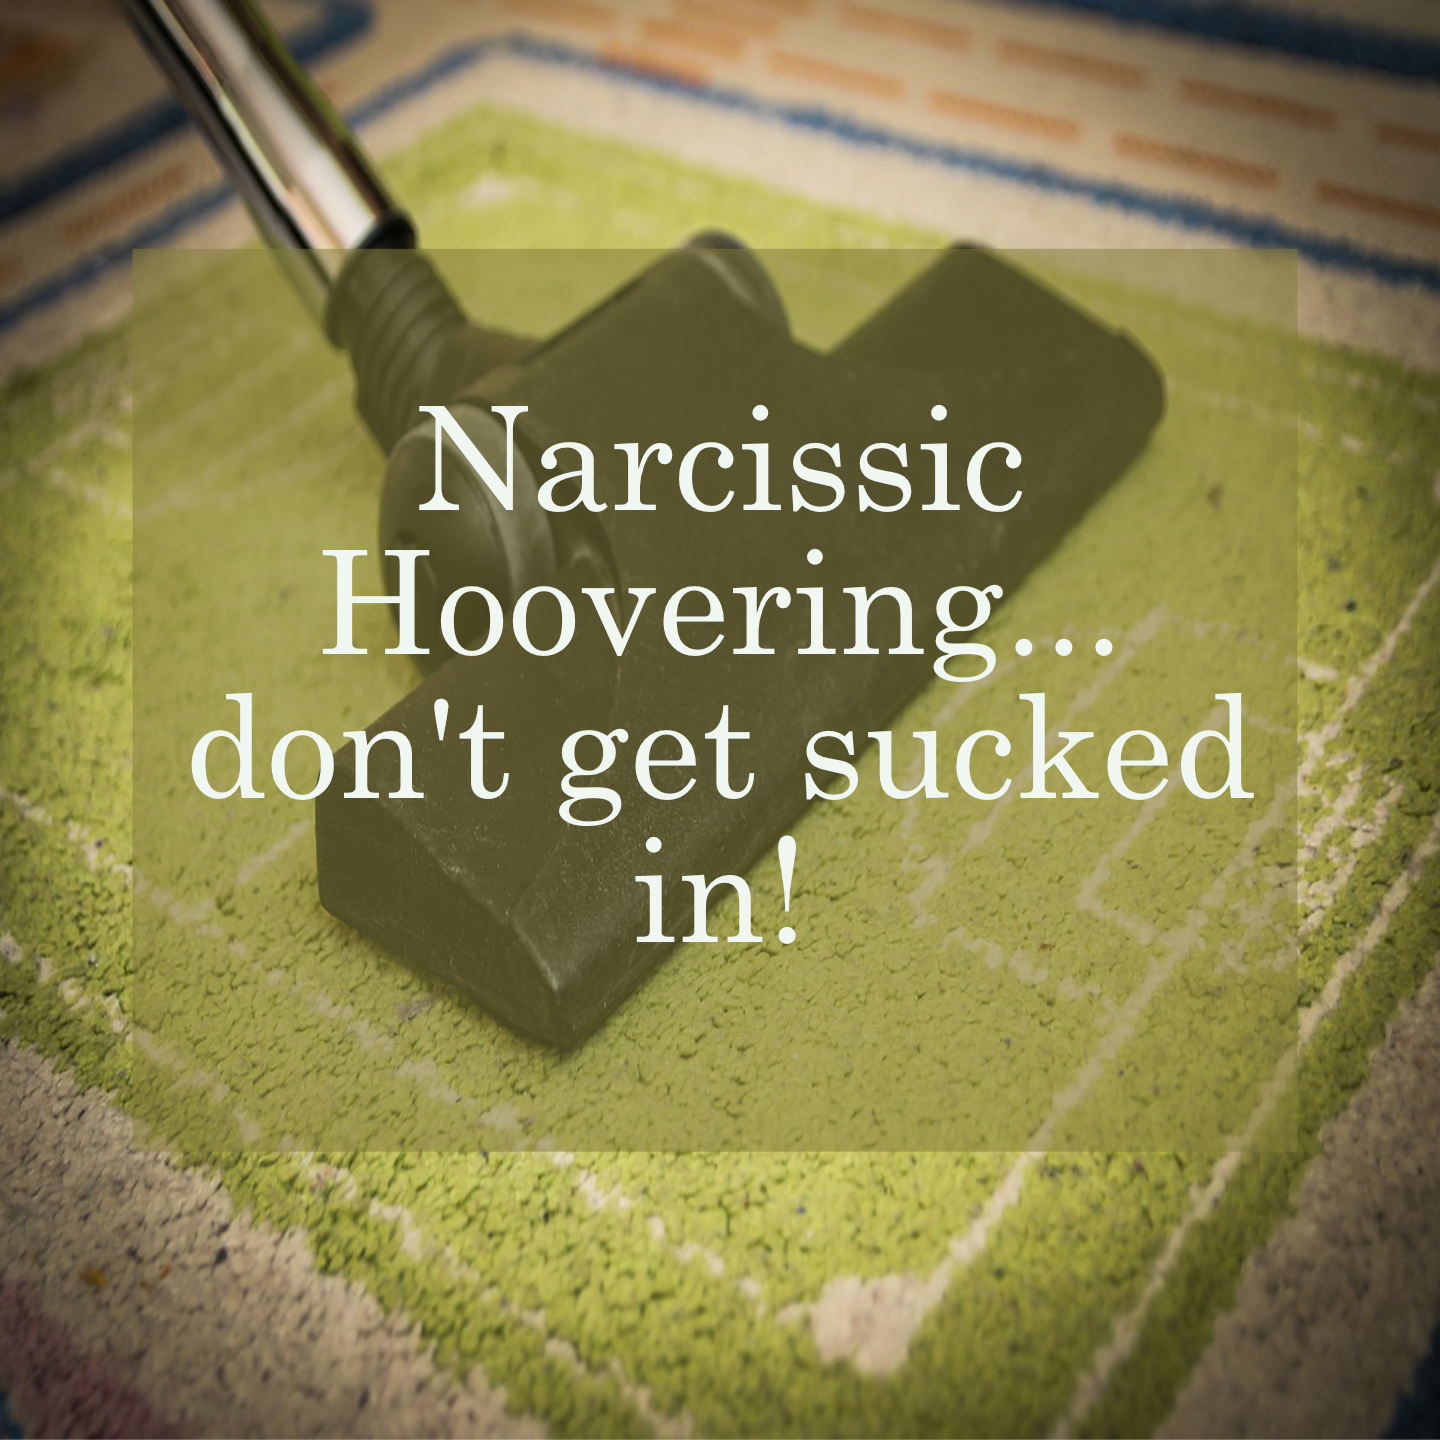 Narcissistic Hoovering - Don't get sucked in!